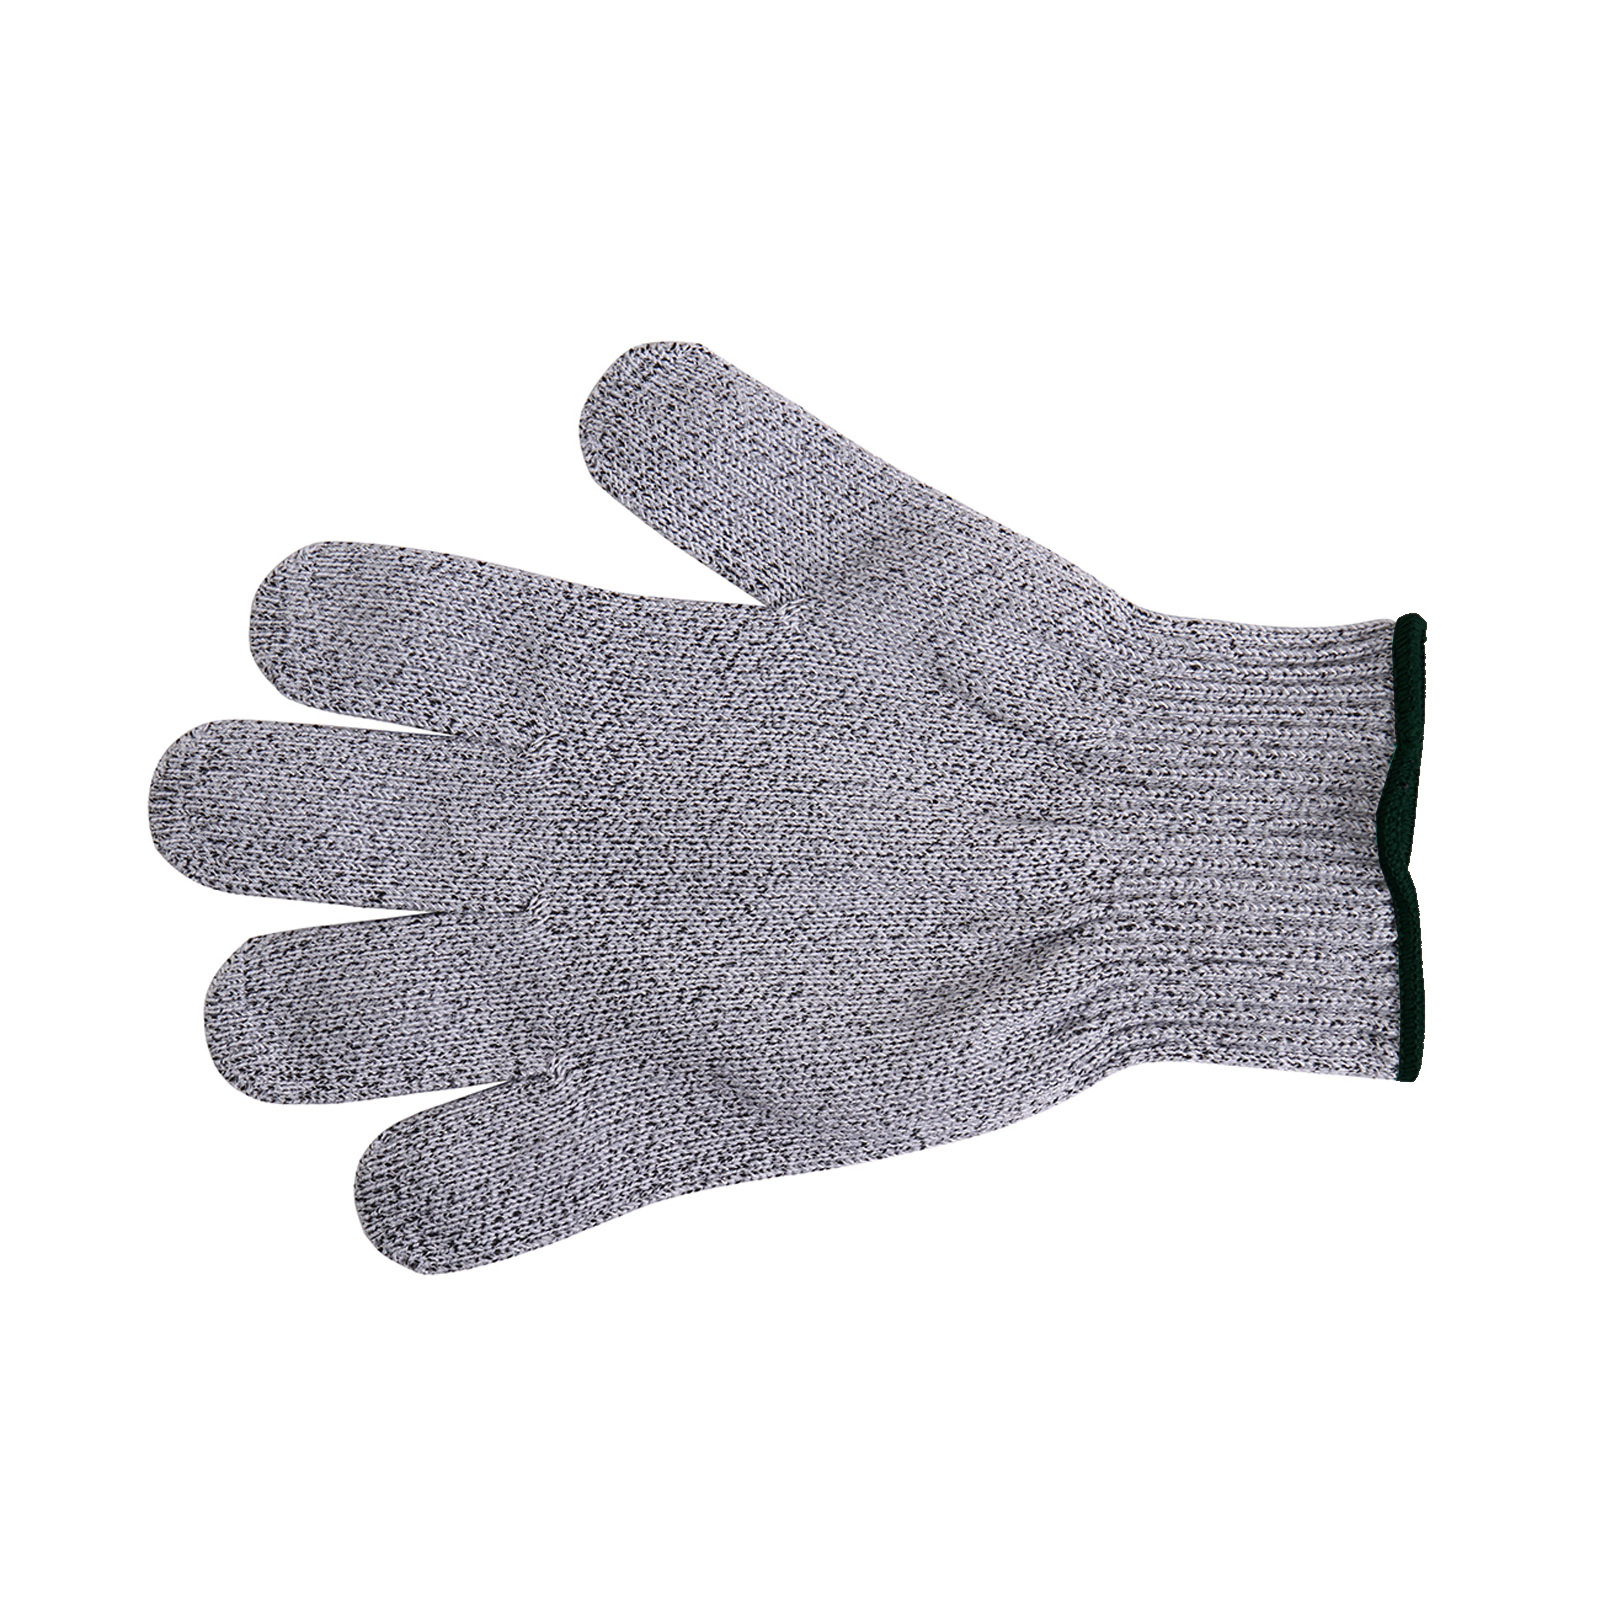 Mercer Culinary M334121X glove, cut resistant